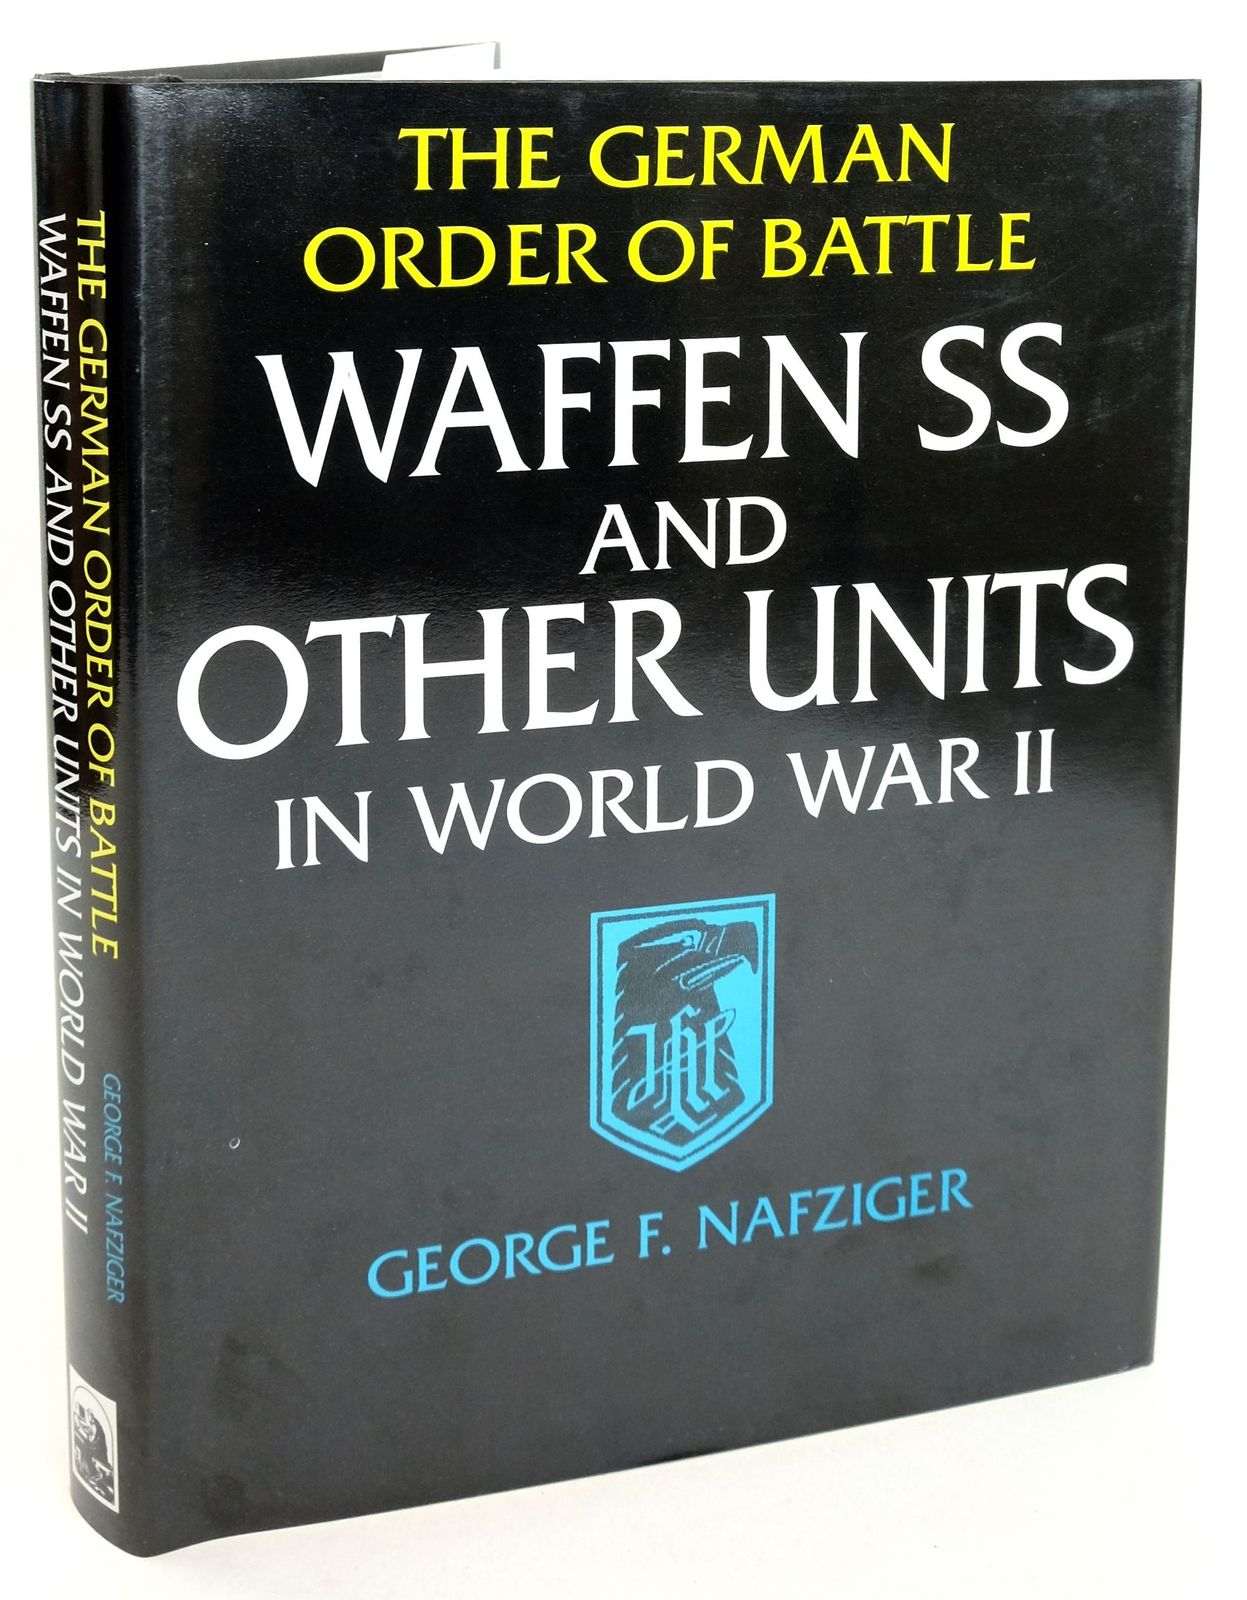 Photo of THE GERMAN ORDER OF BATTLE WAFFEN SS AND OTHER UNITS IN WORLD WAR II written by Nafziger, George published by Combined Publishing (STOCK CODE: 1819336)  for sale by Stella & Rose's Books